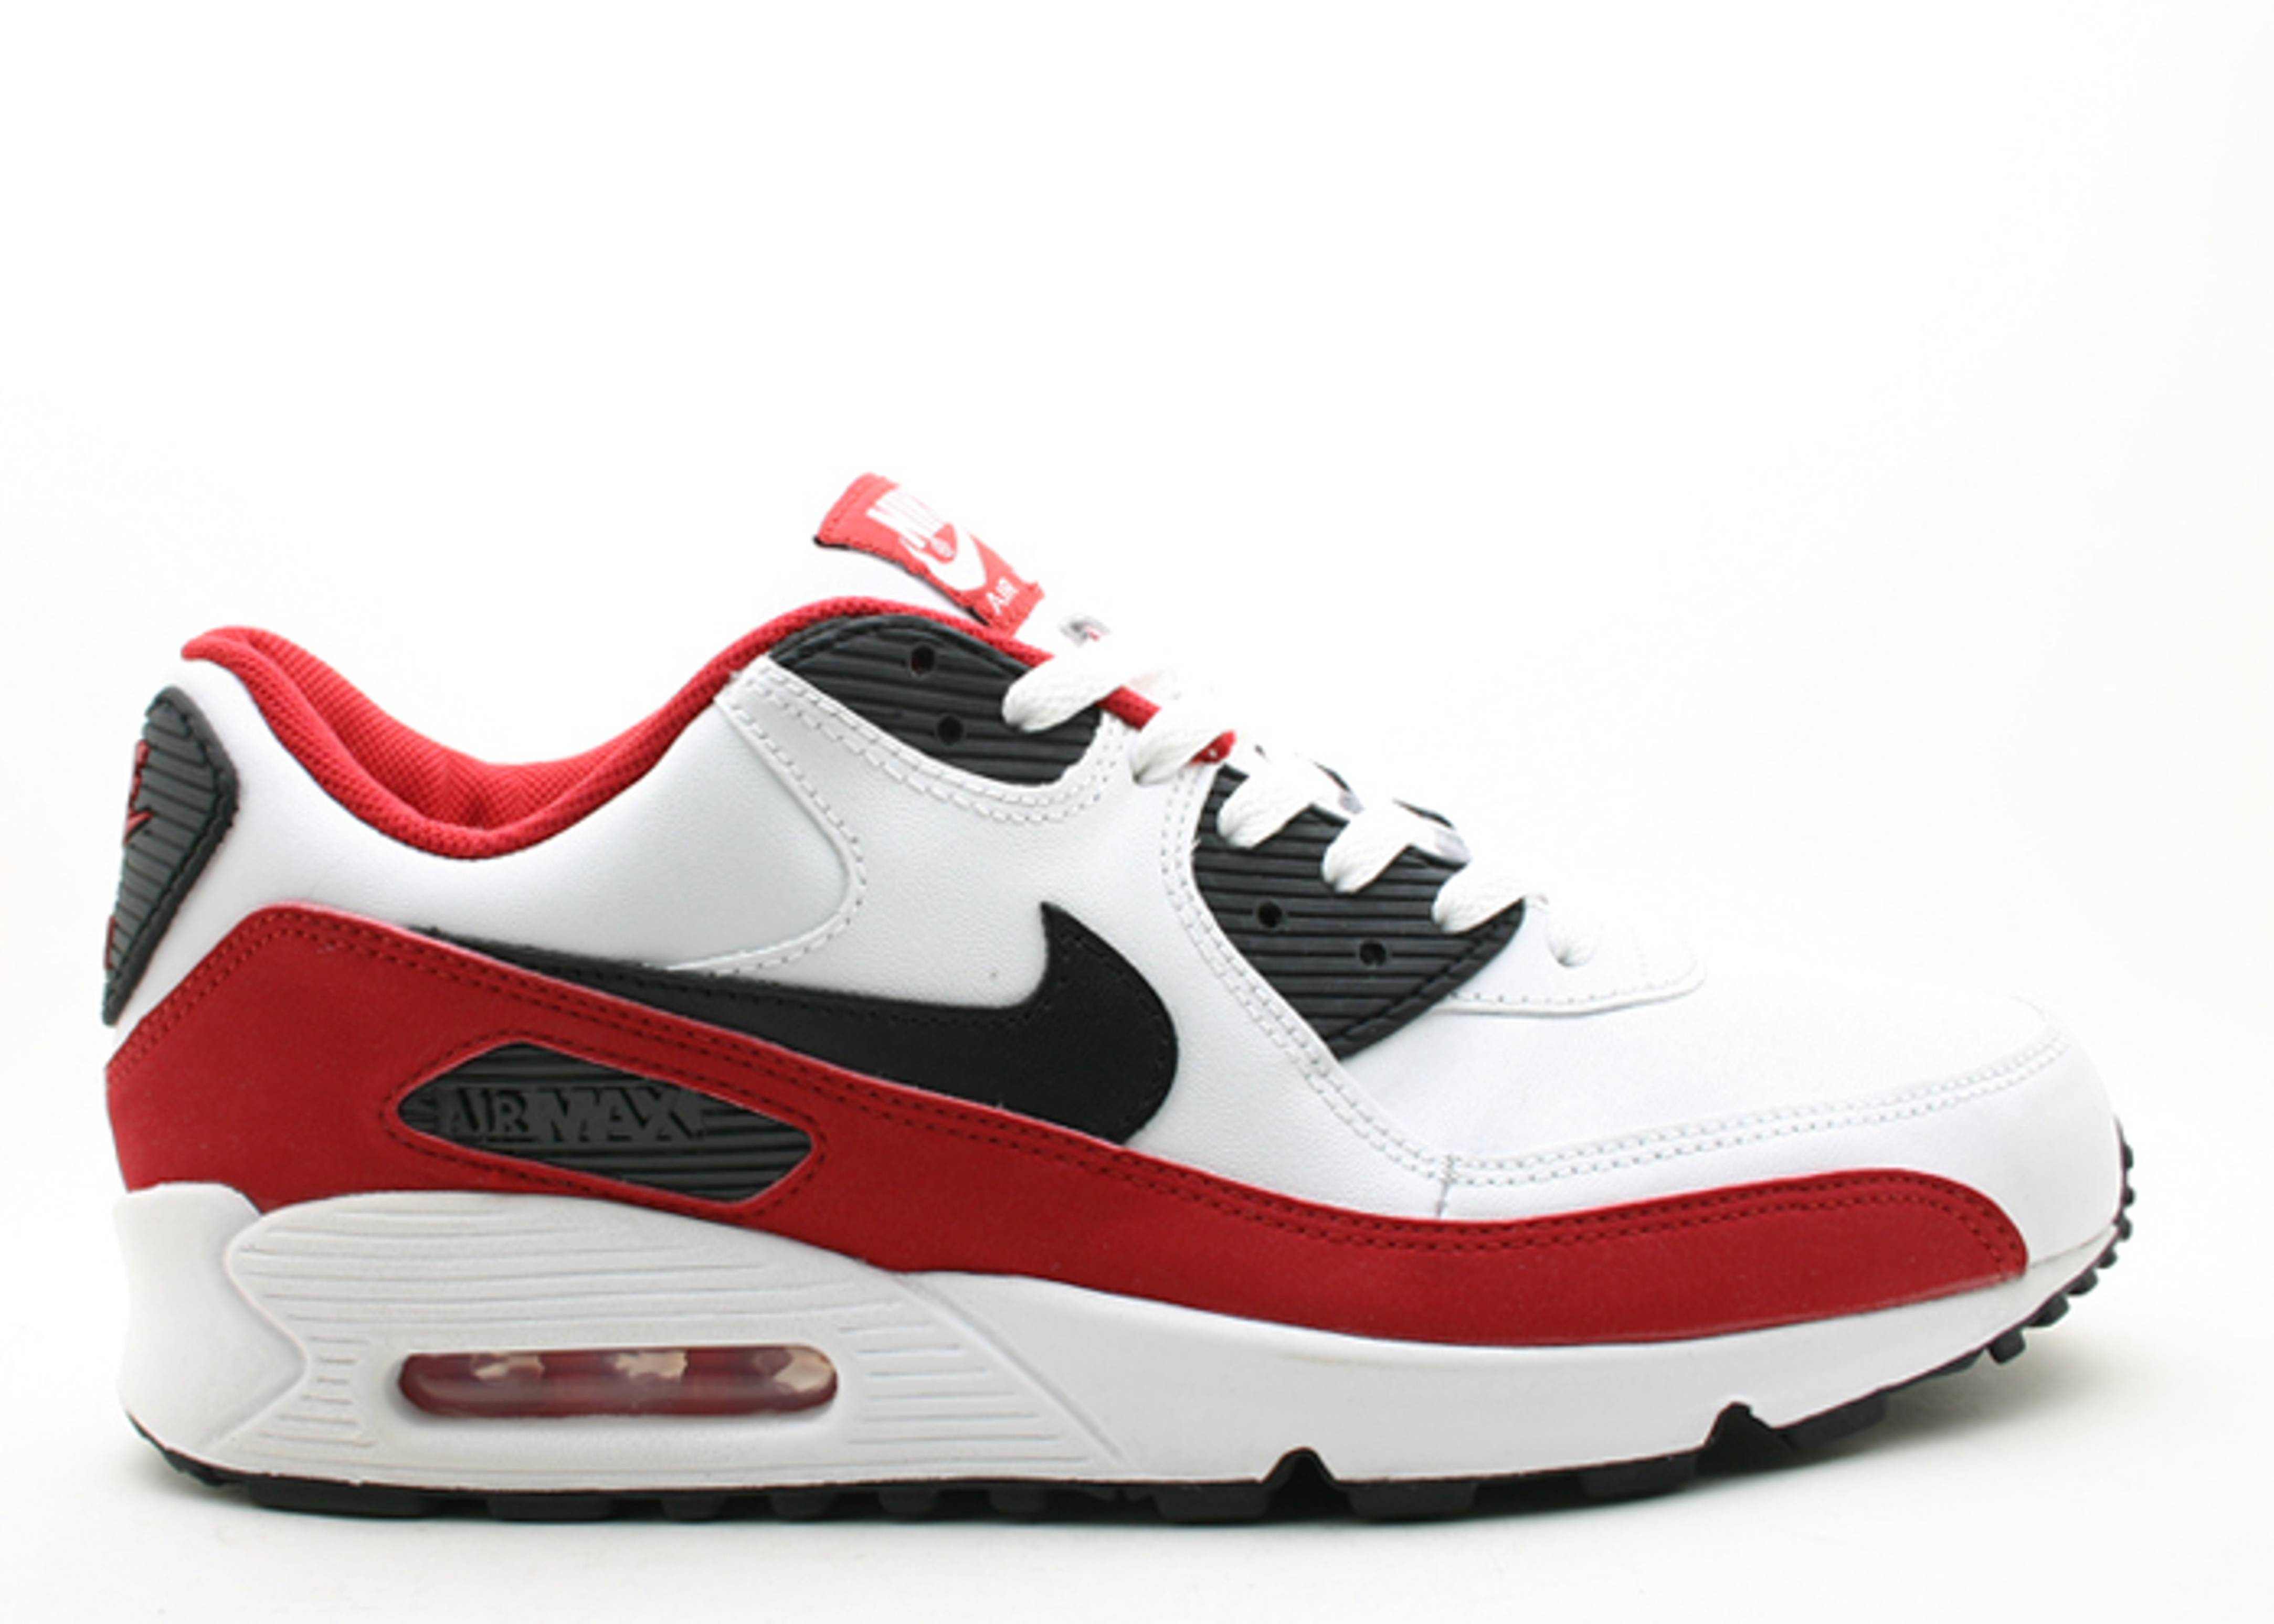 promo code 10764 25ec5 nike. air max 90 leather